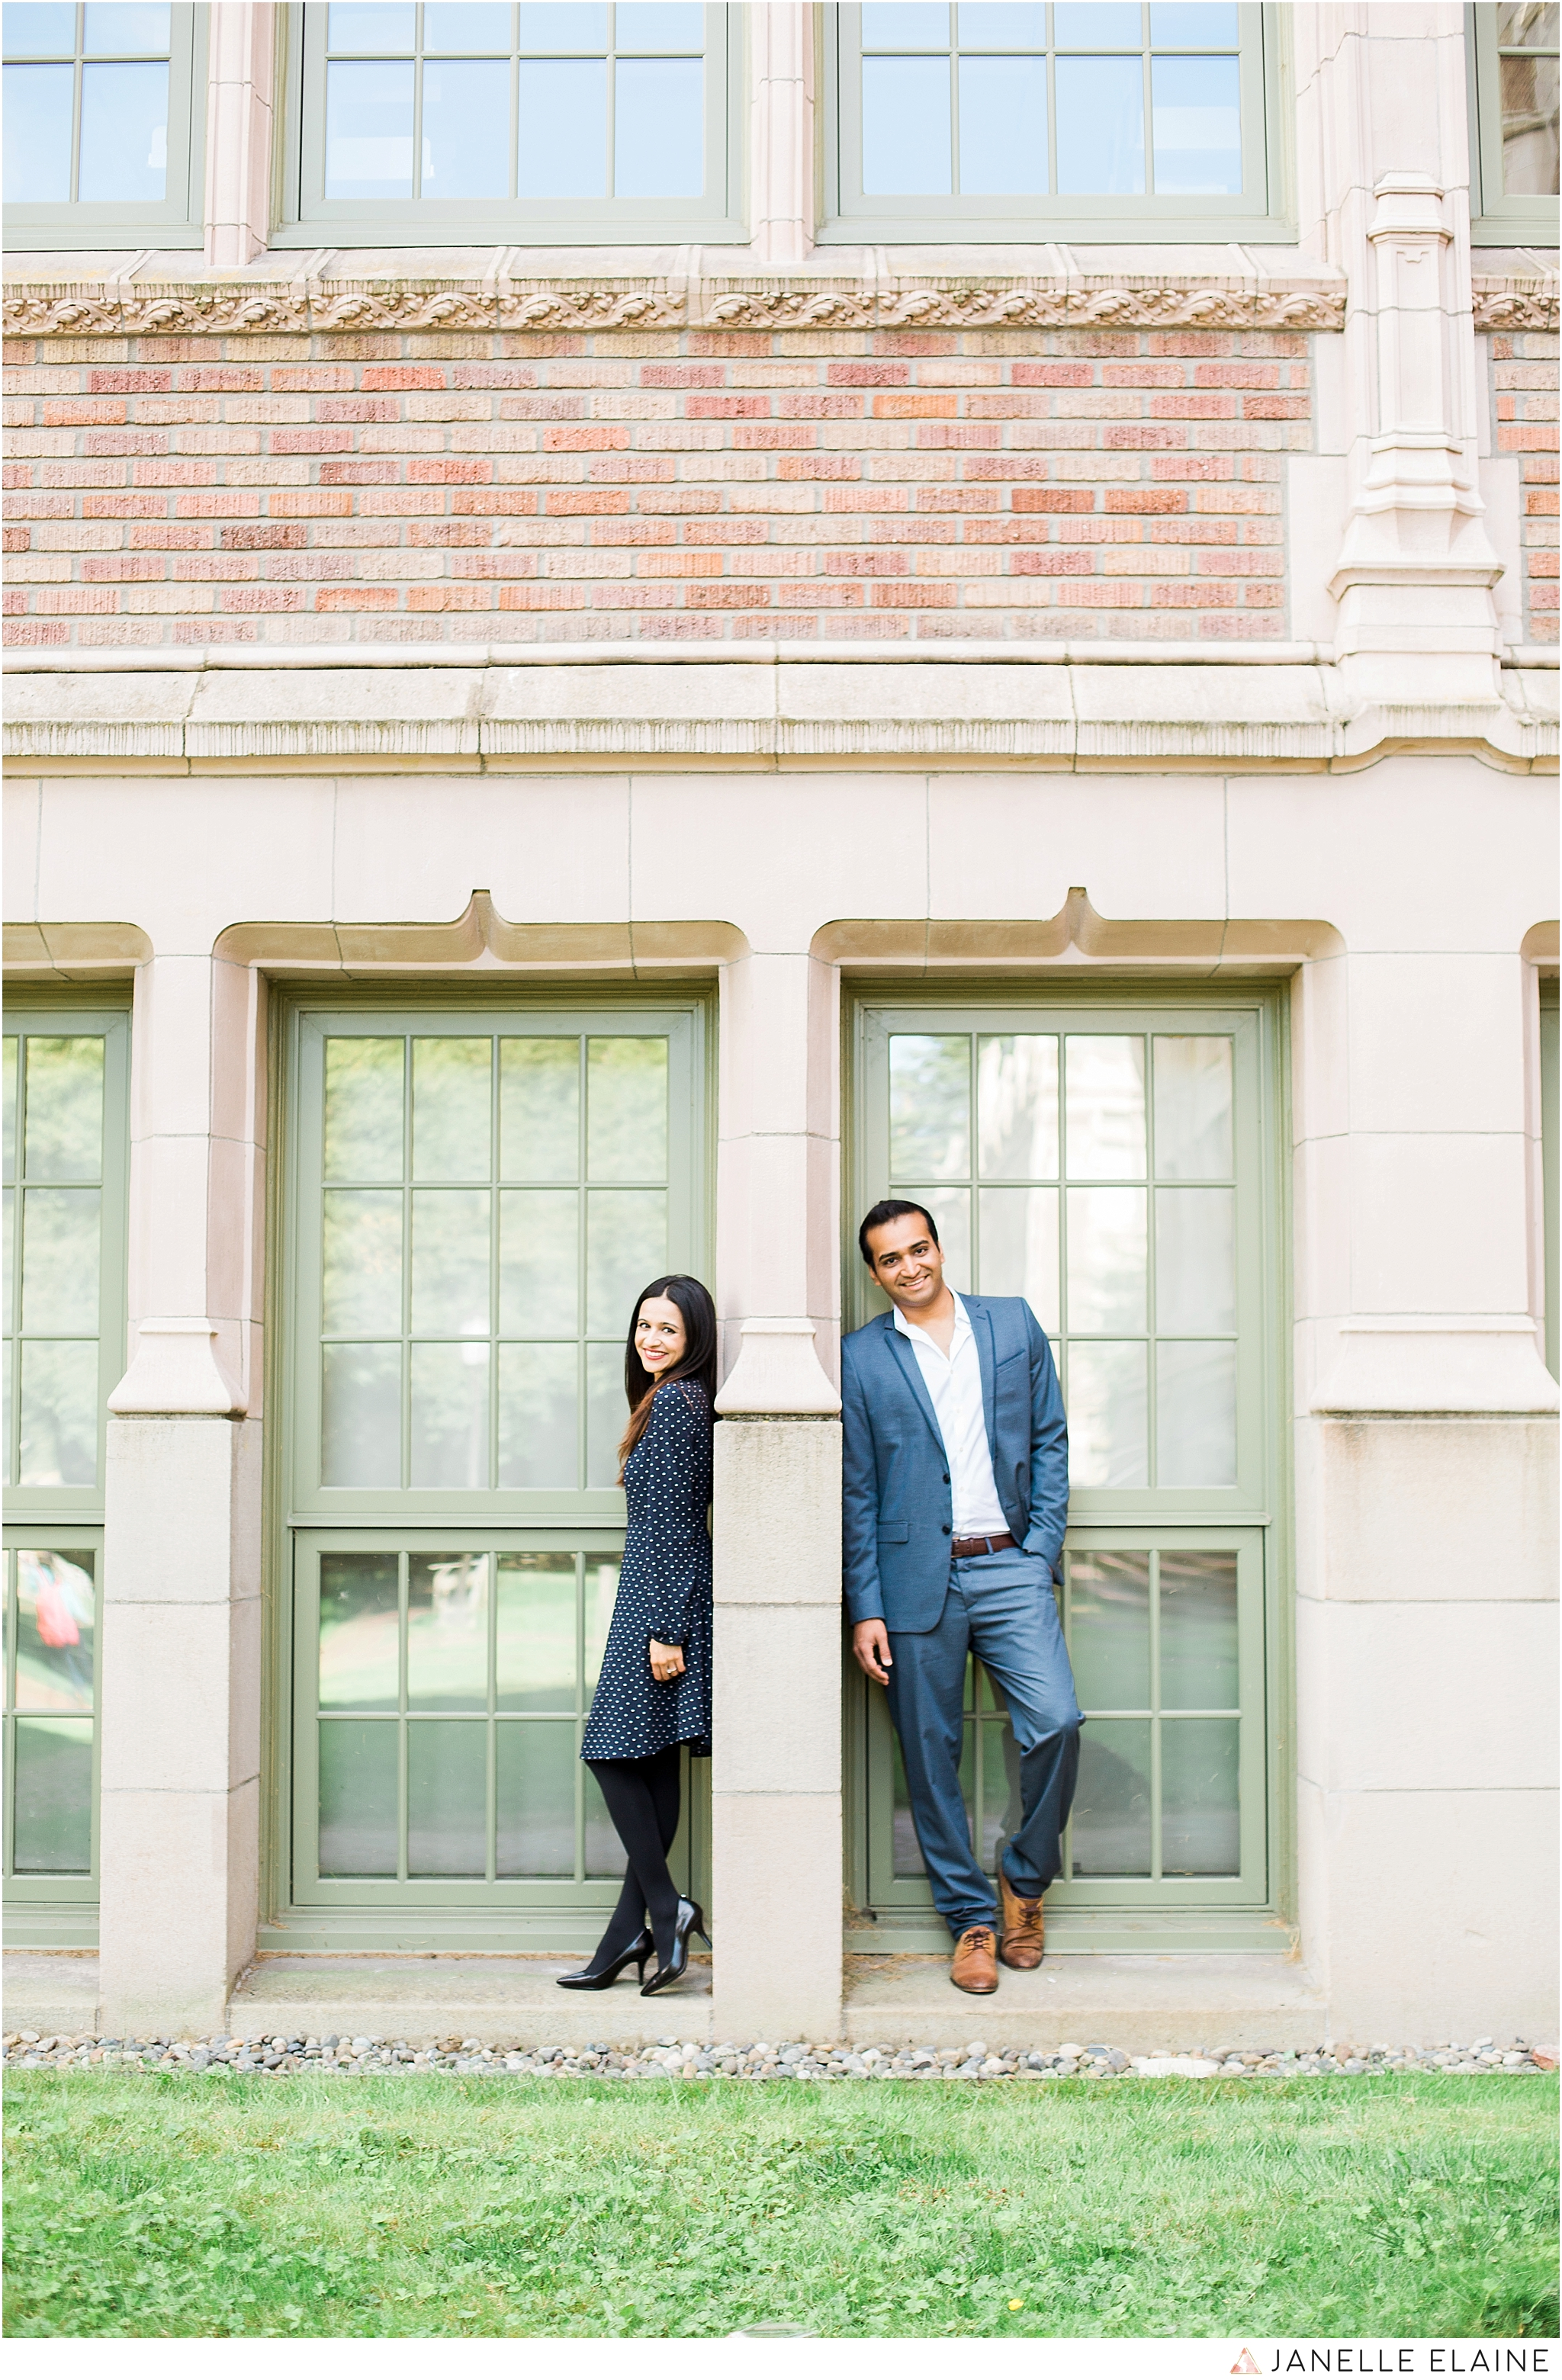 janelle elaine photography-zain and umema-seattle-uw-red square-engagement-photographer-178.jpg